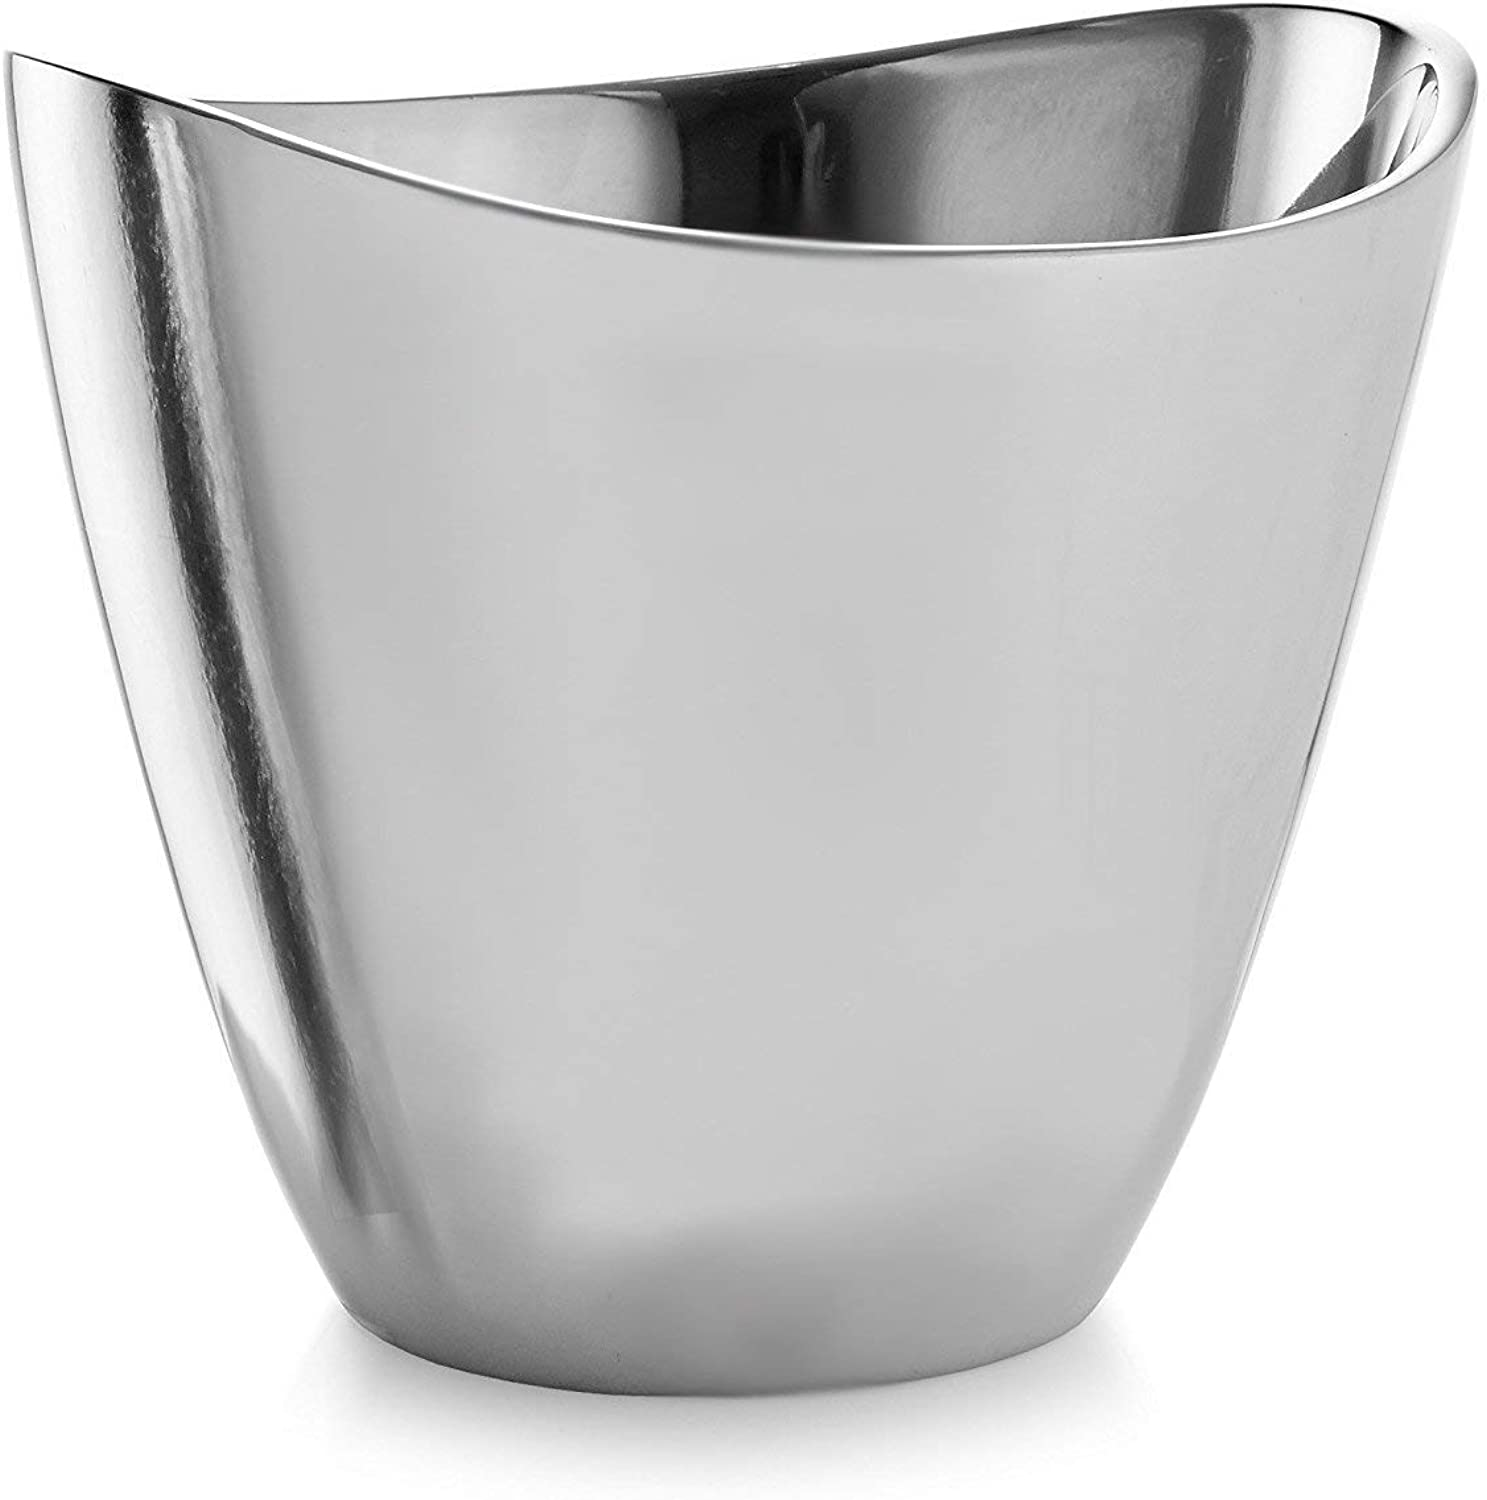 Nambe Vie Alloy Champagne Bucket 7.5 Inches High - Perfect Wedding Gift - Elegant Modern Design - Wine Cooler